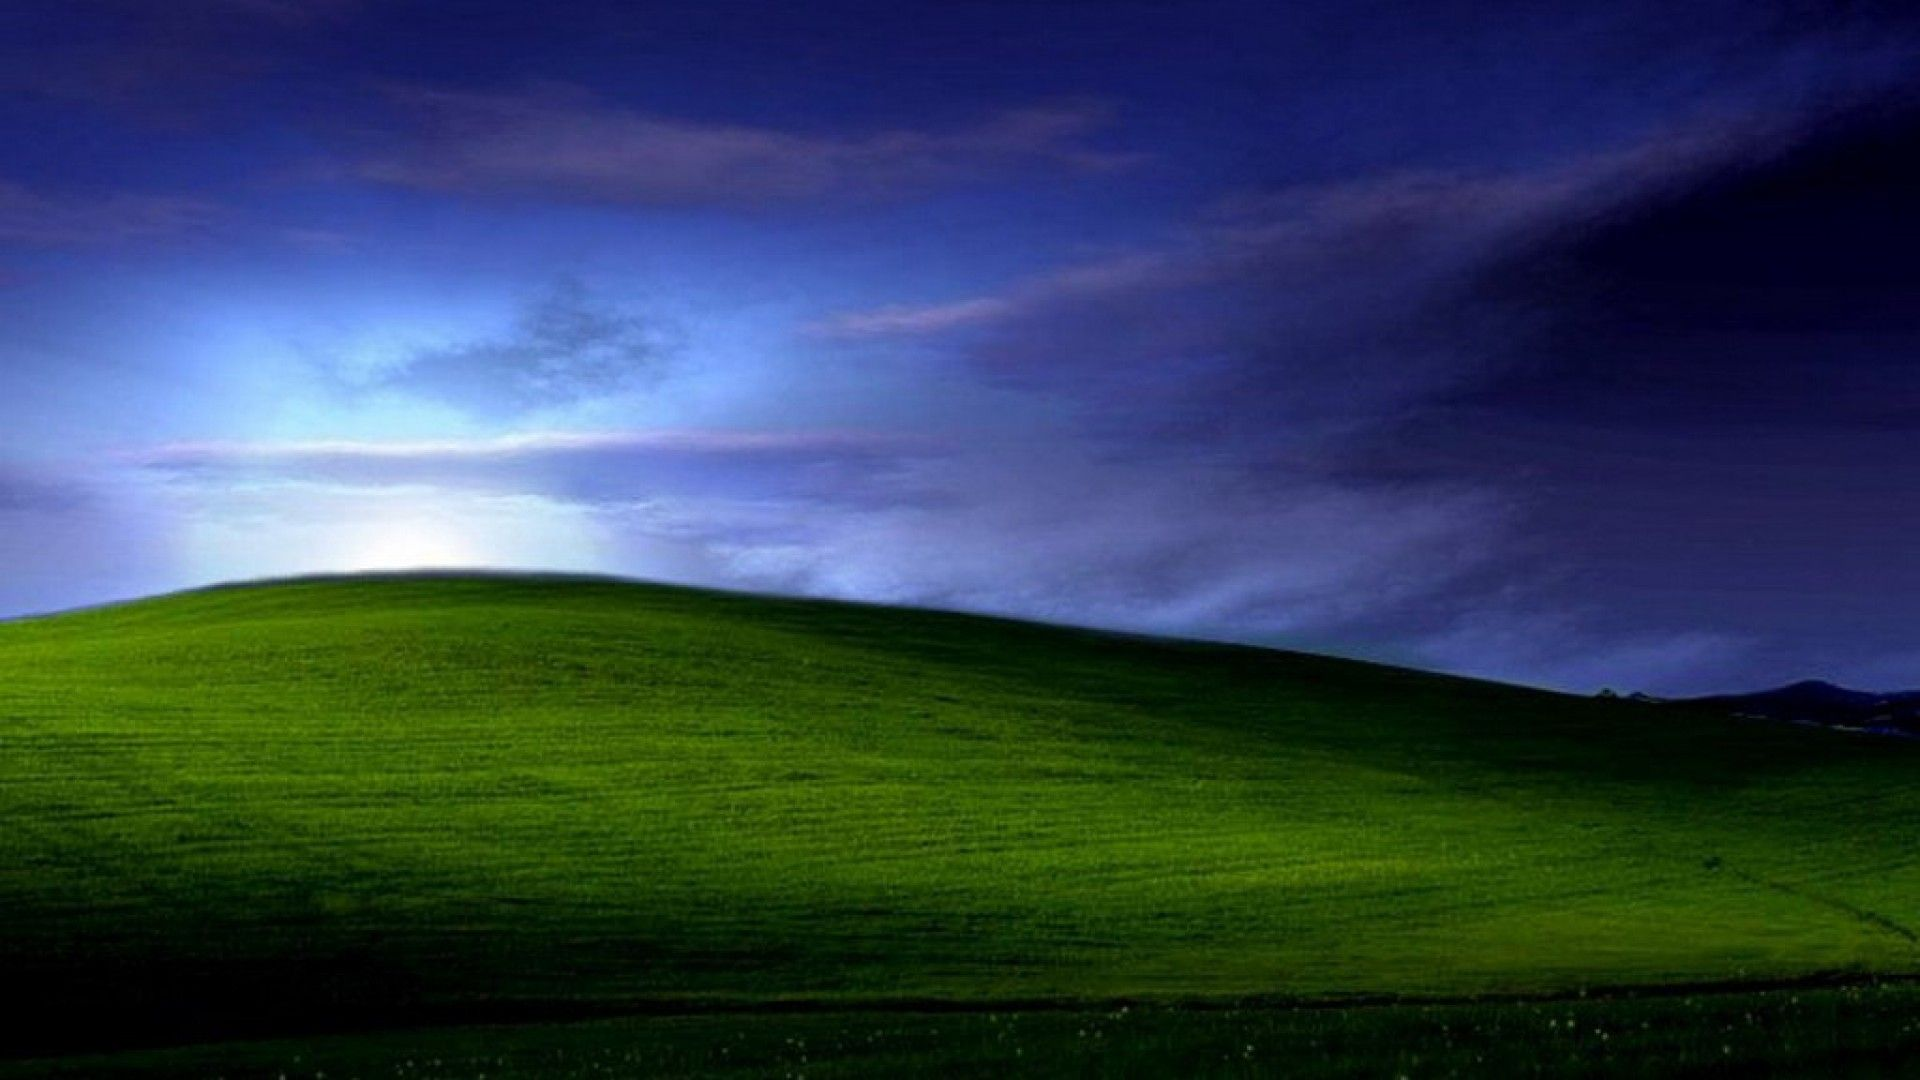 Windows Xp Background 4k Posted By Christopher Sellers